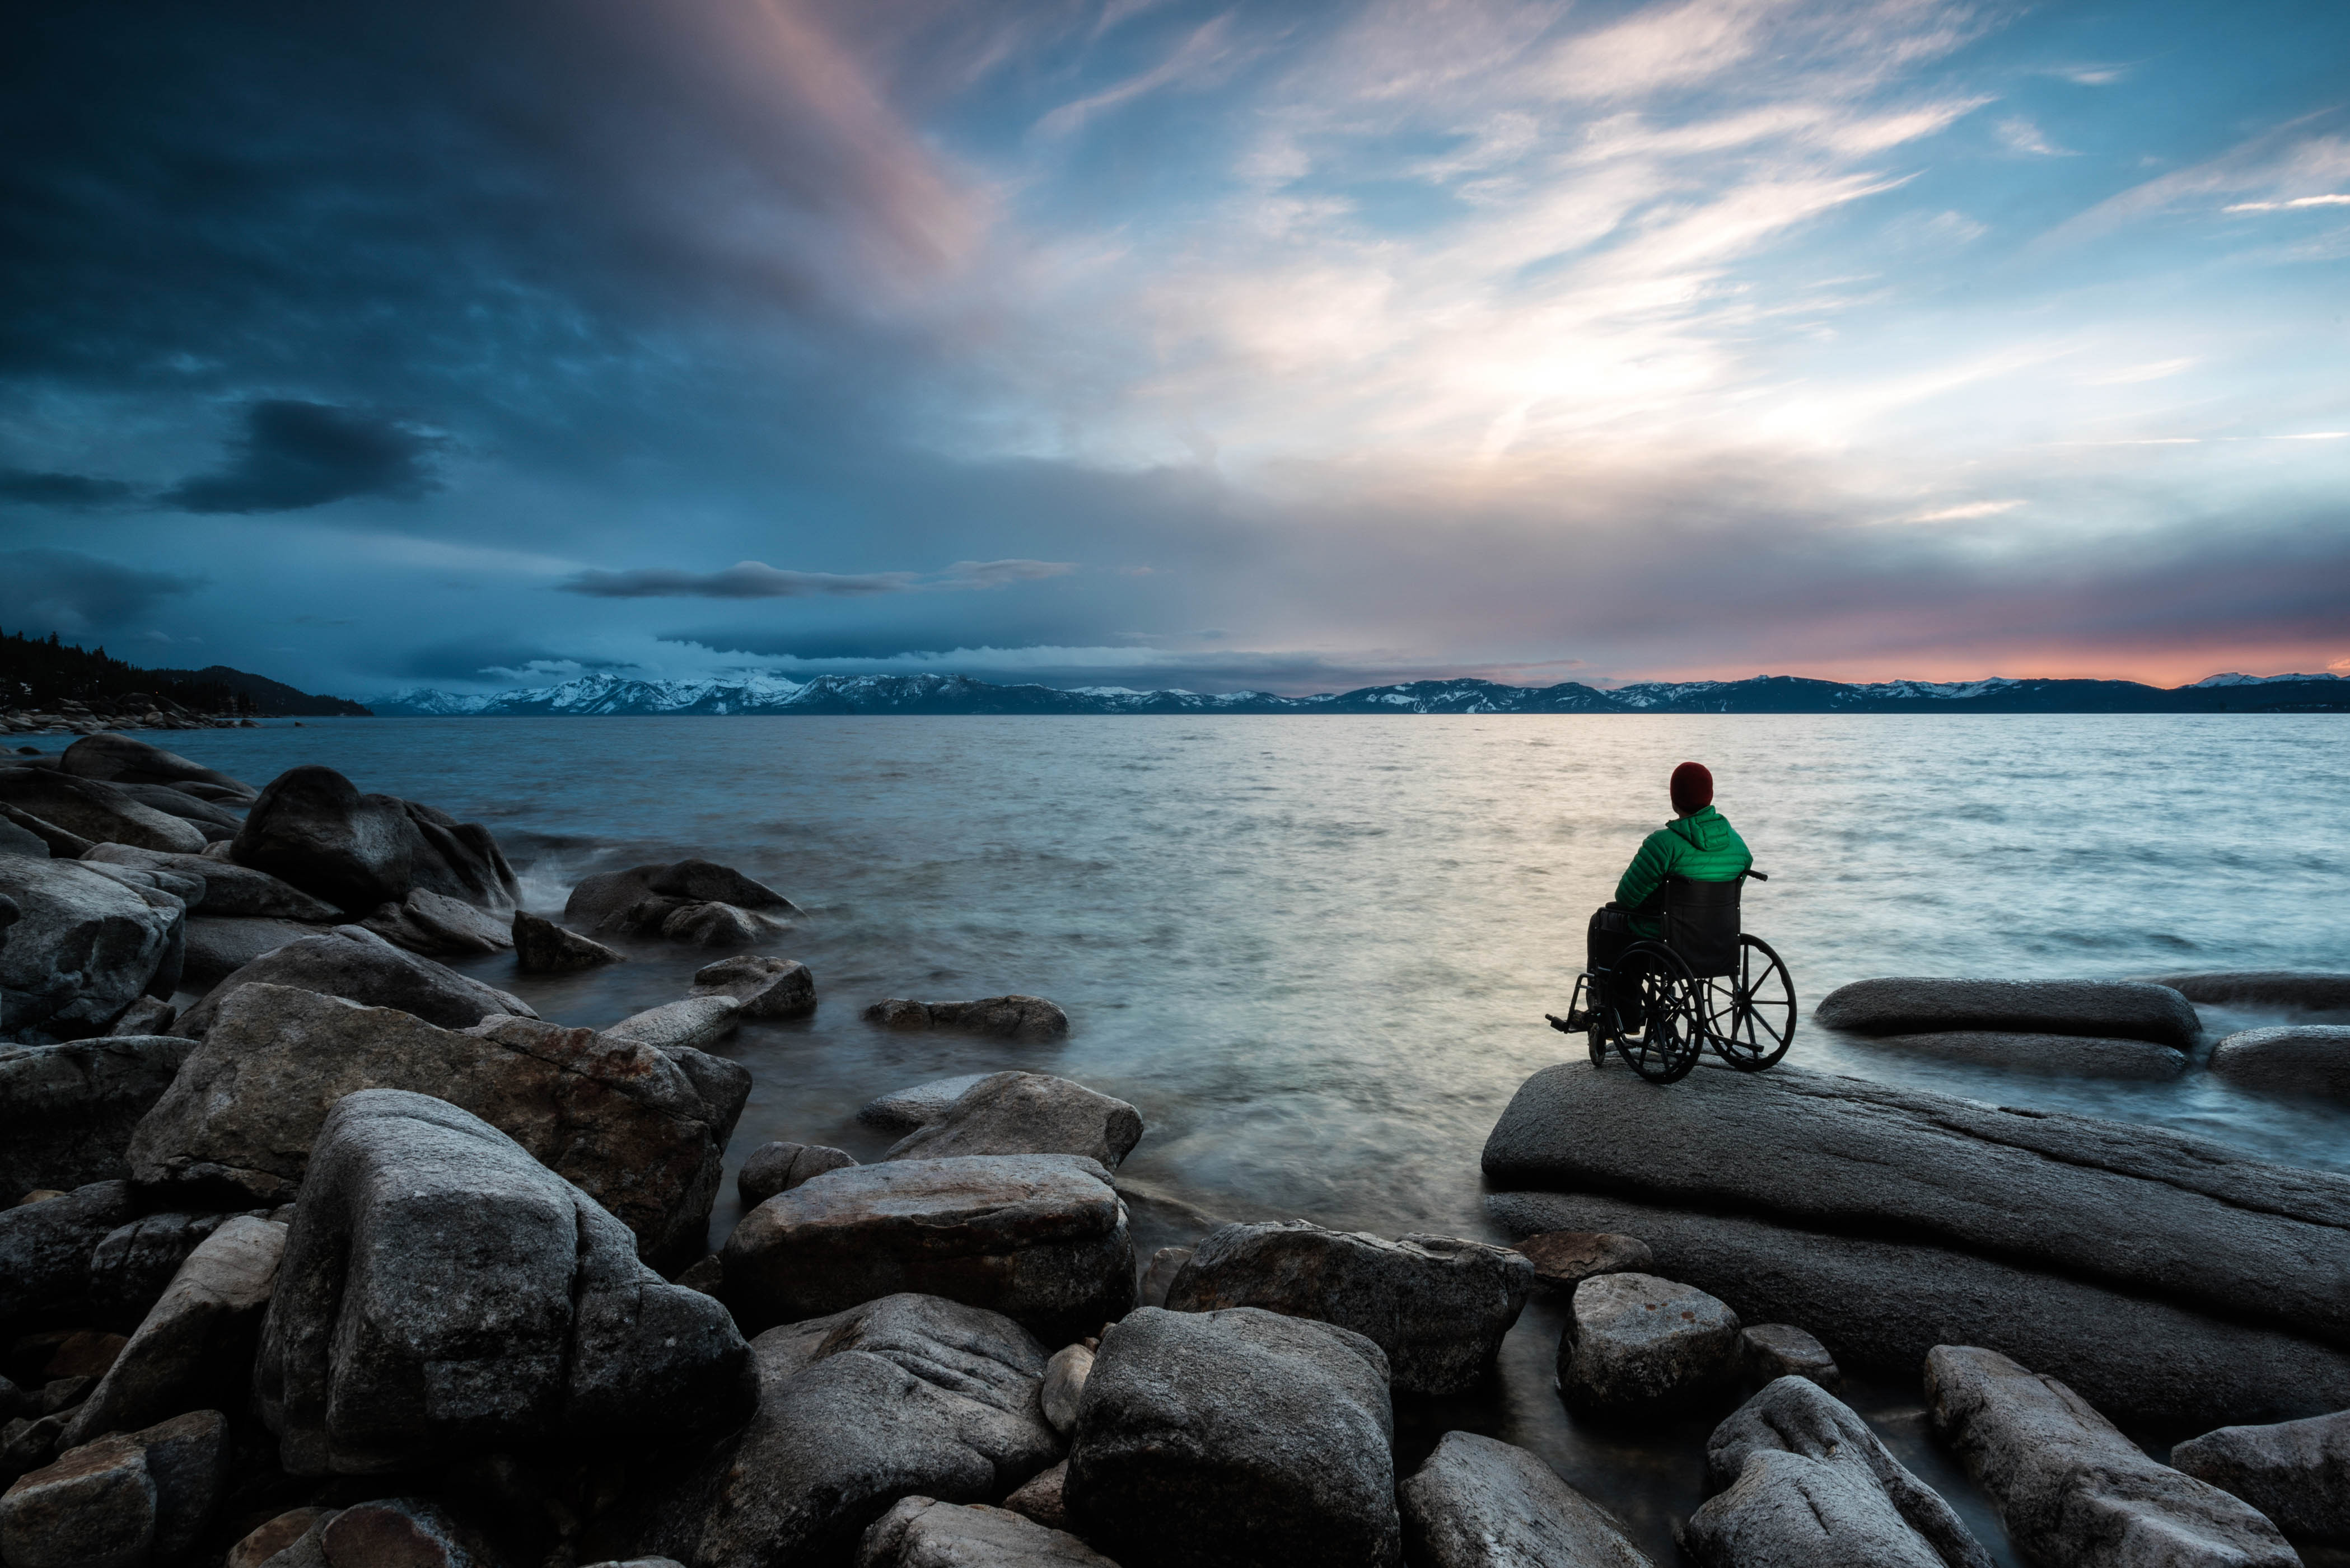 A disabled athlete looking off into the distance during sunset. Location Lake Tahoe CA USA